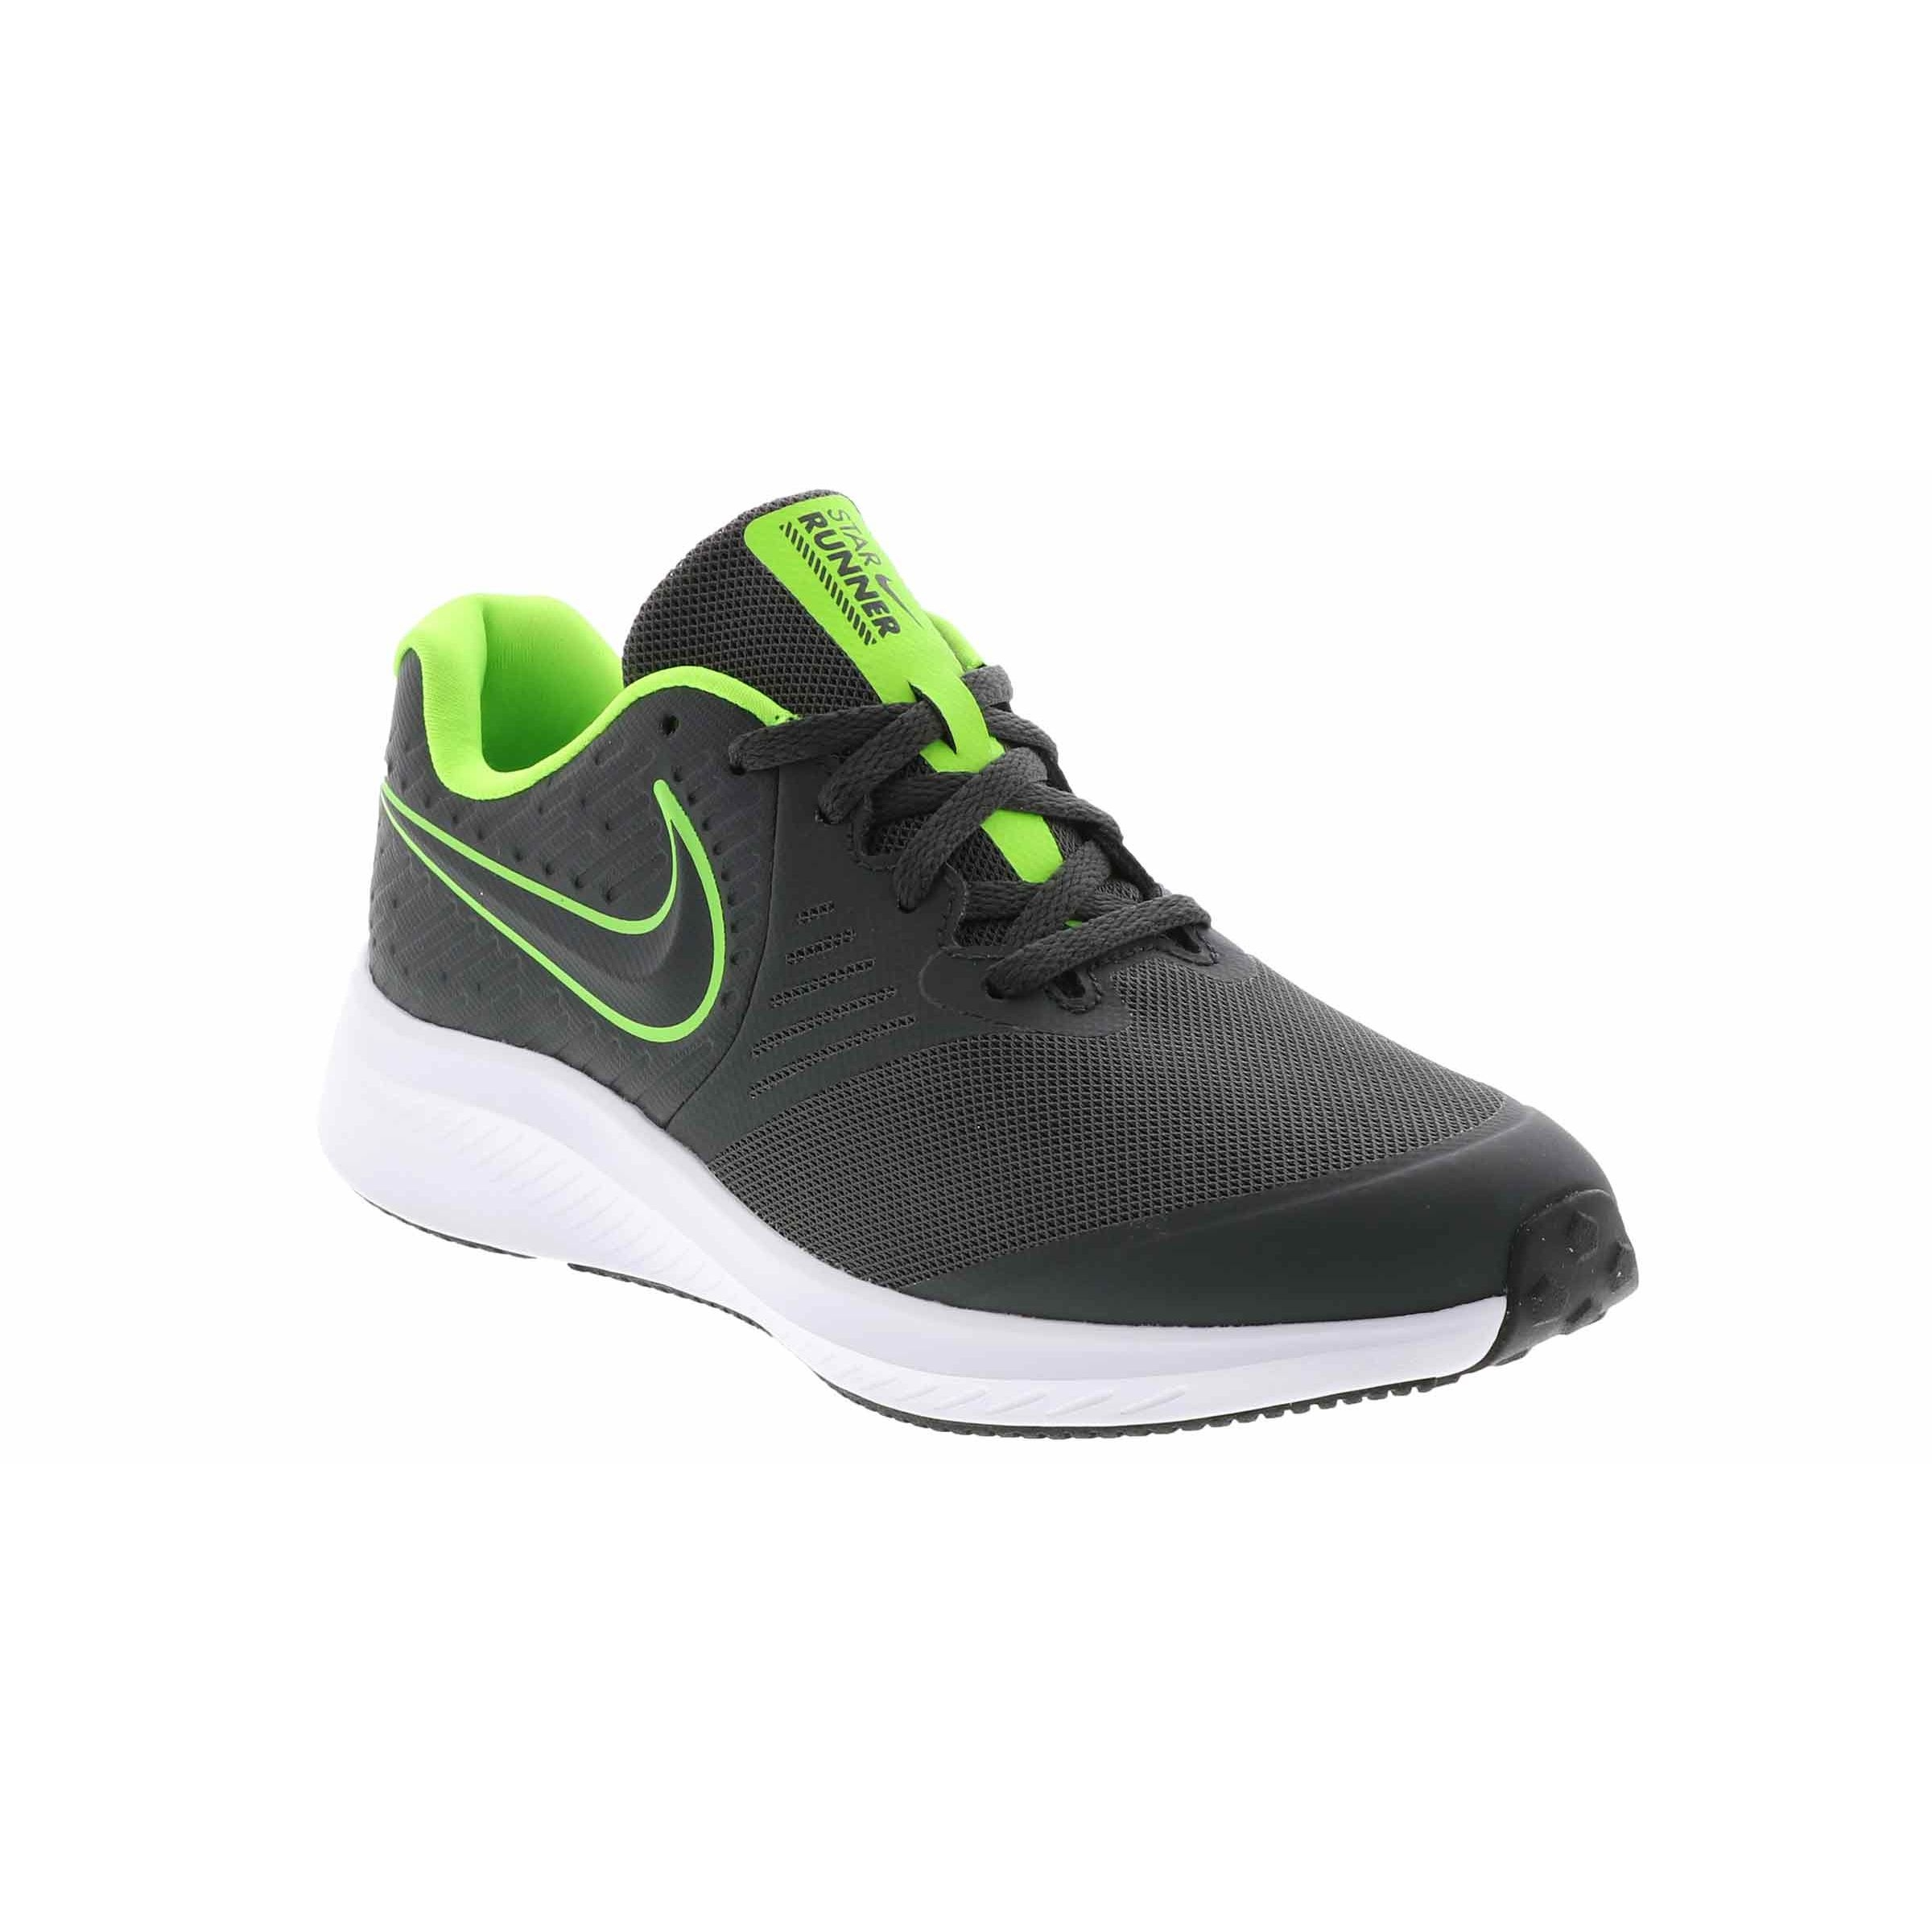 Details zu Nike Scarpe Star Runner 2 (GS), Junior Art. AQ3542 004 (AnthraciteElectric Gr